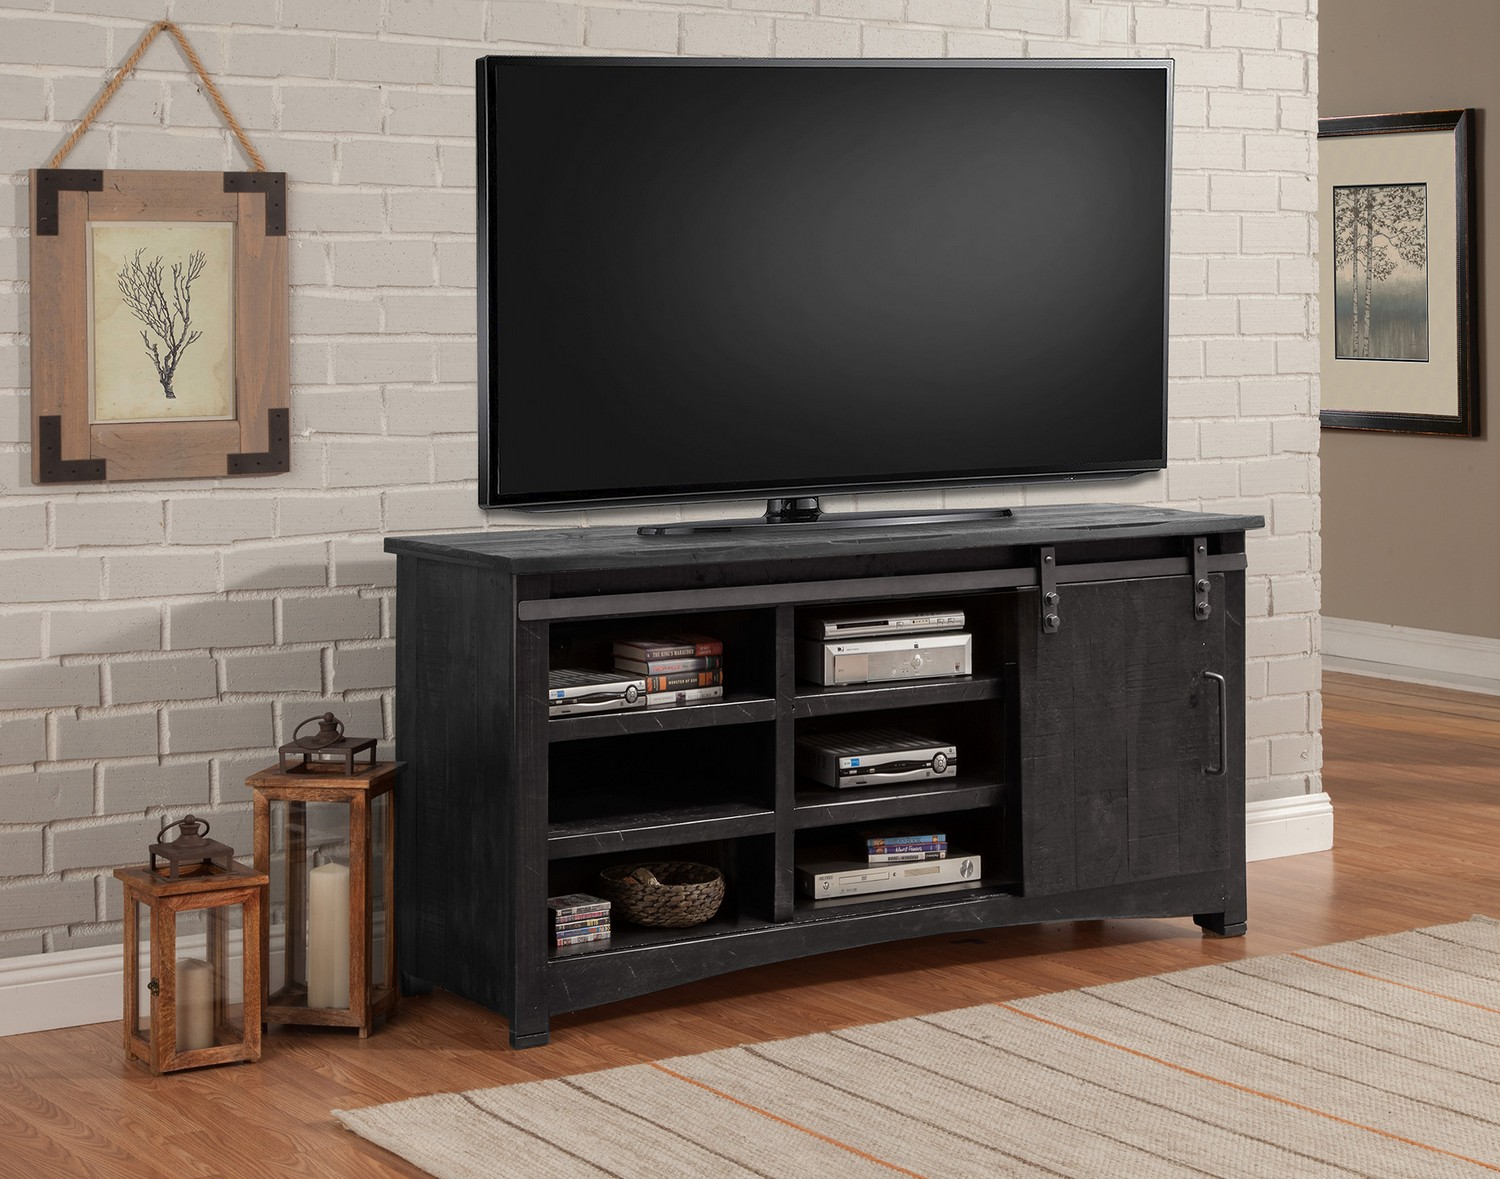 Parker House Durango 63-inch Console with Sliding Door - Rustic Dark Pine